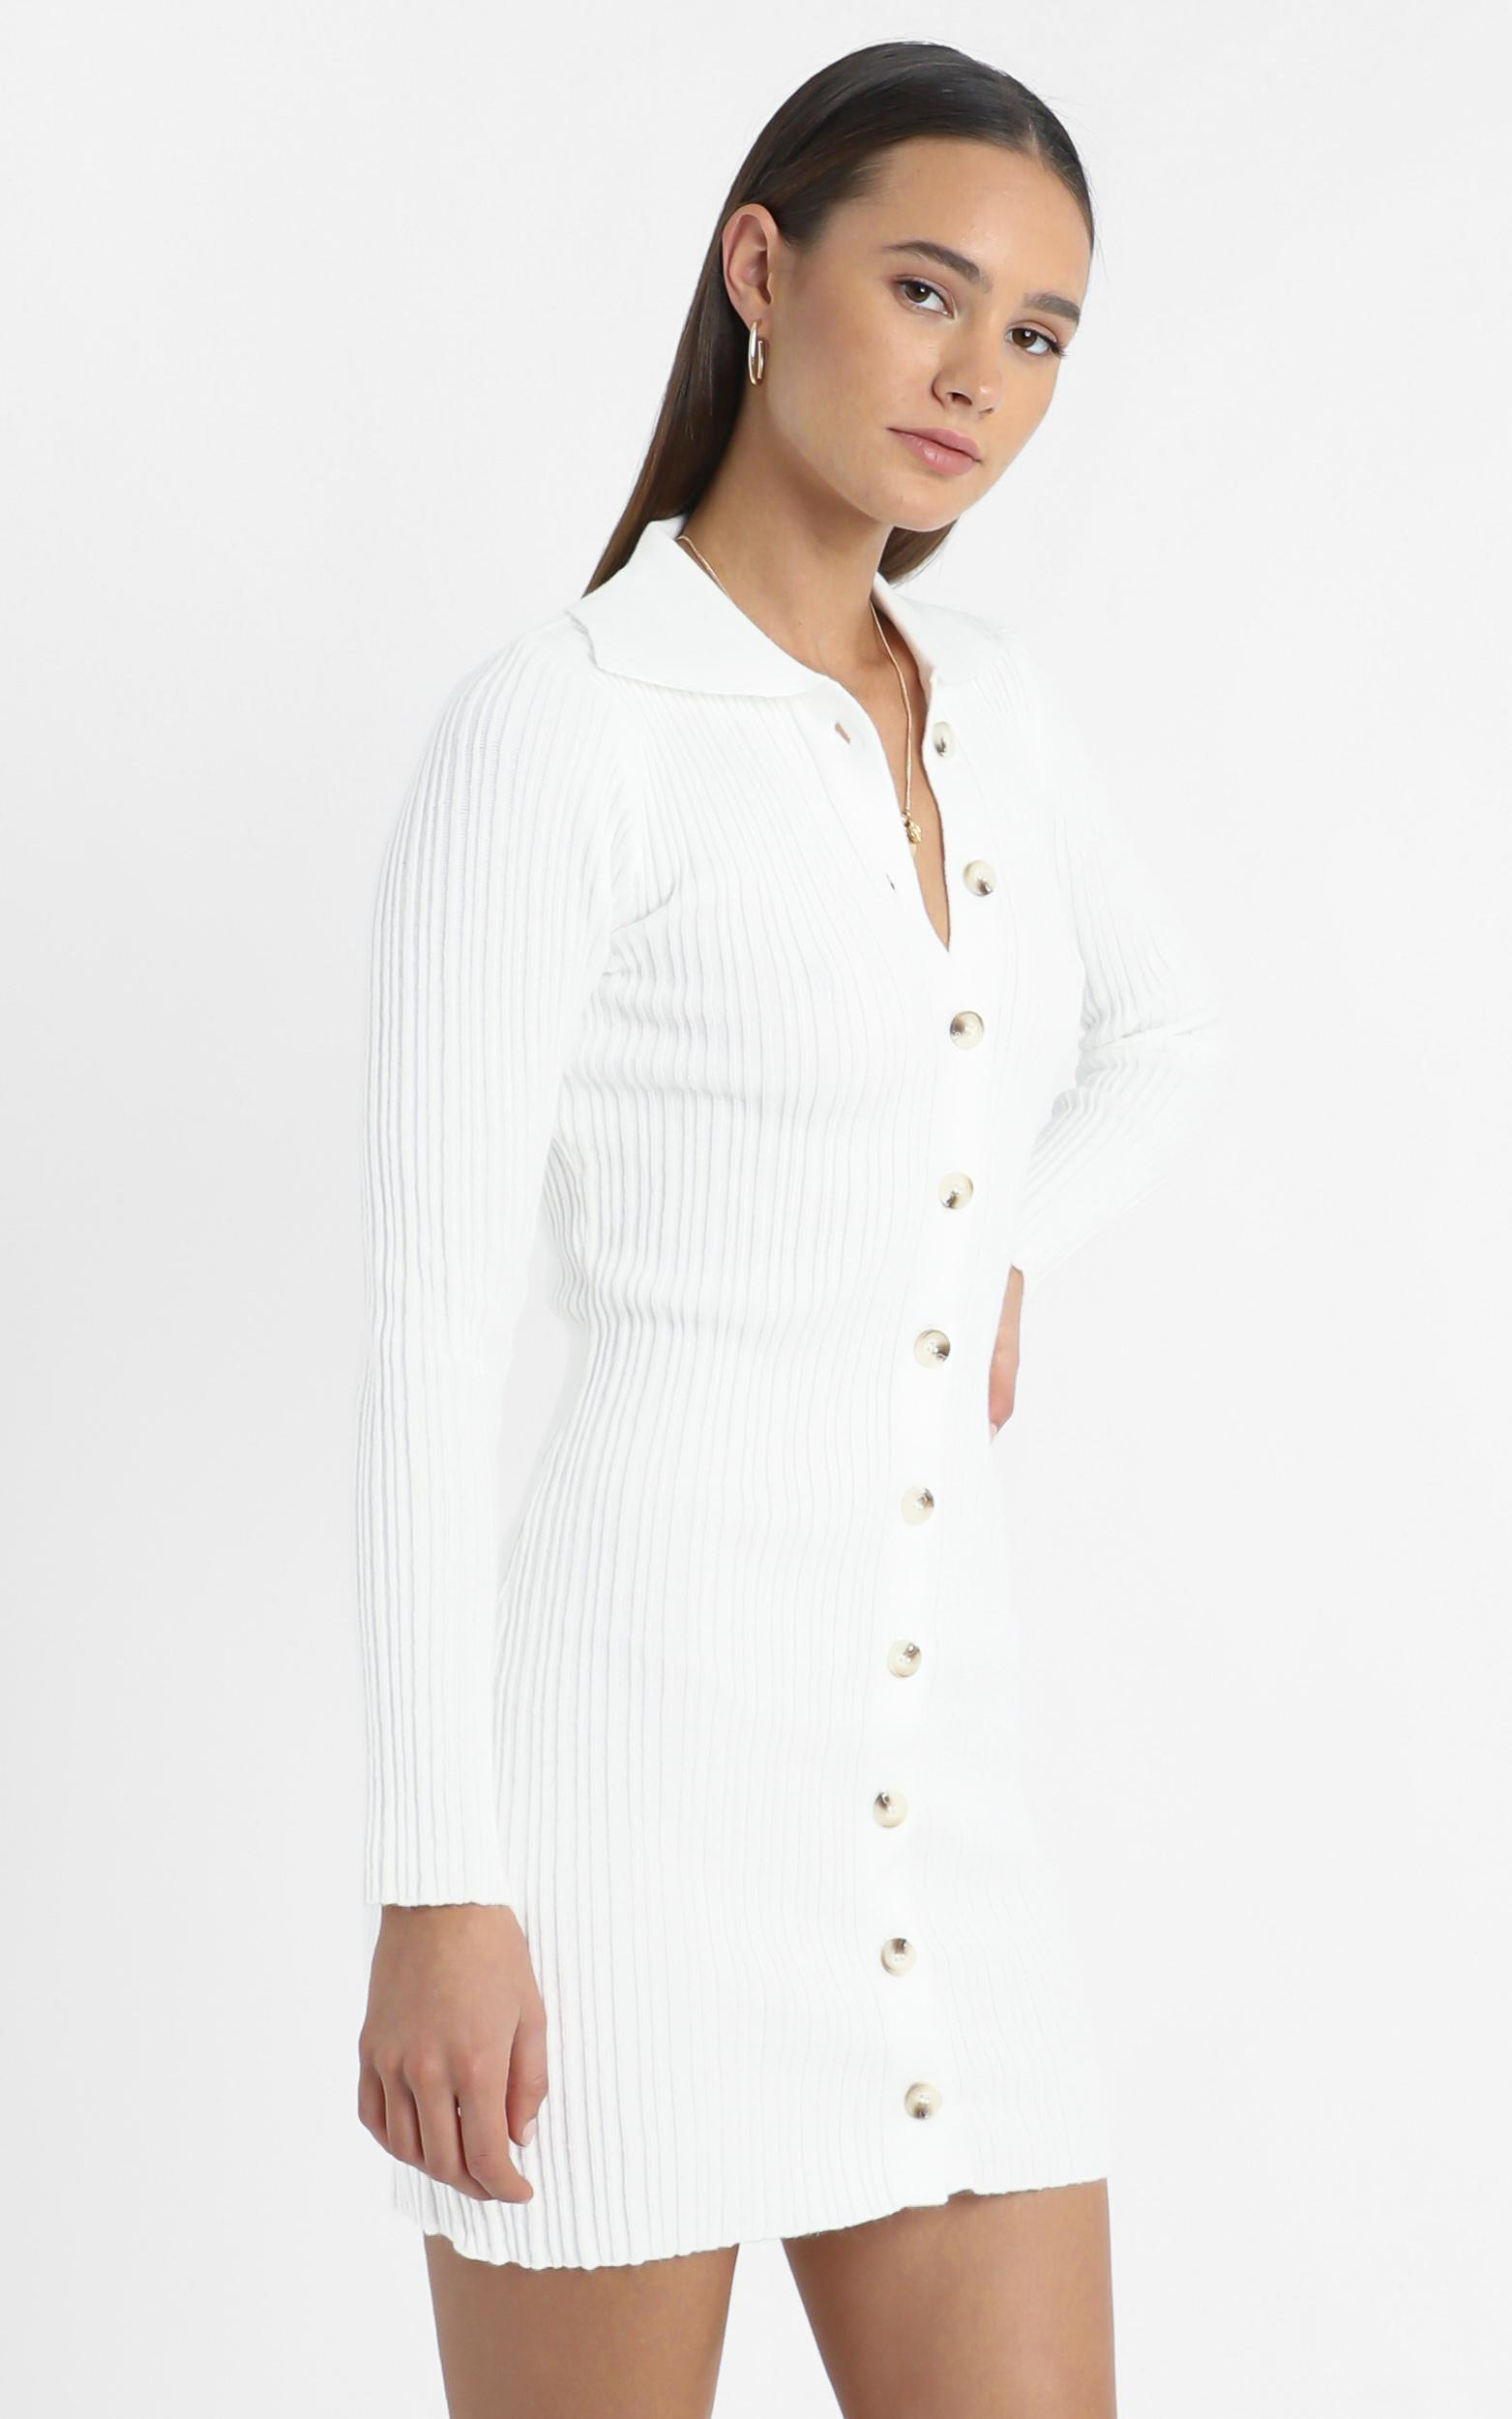 Albury Dress in White - M/L, White, hi-res image number null